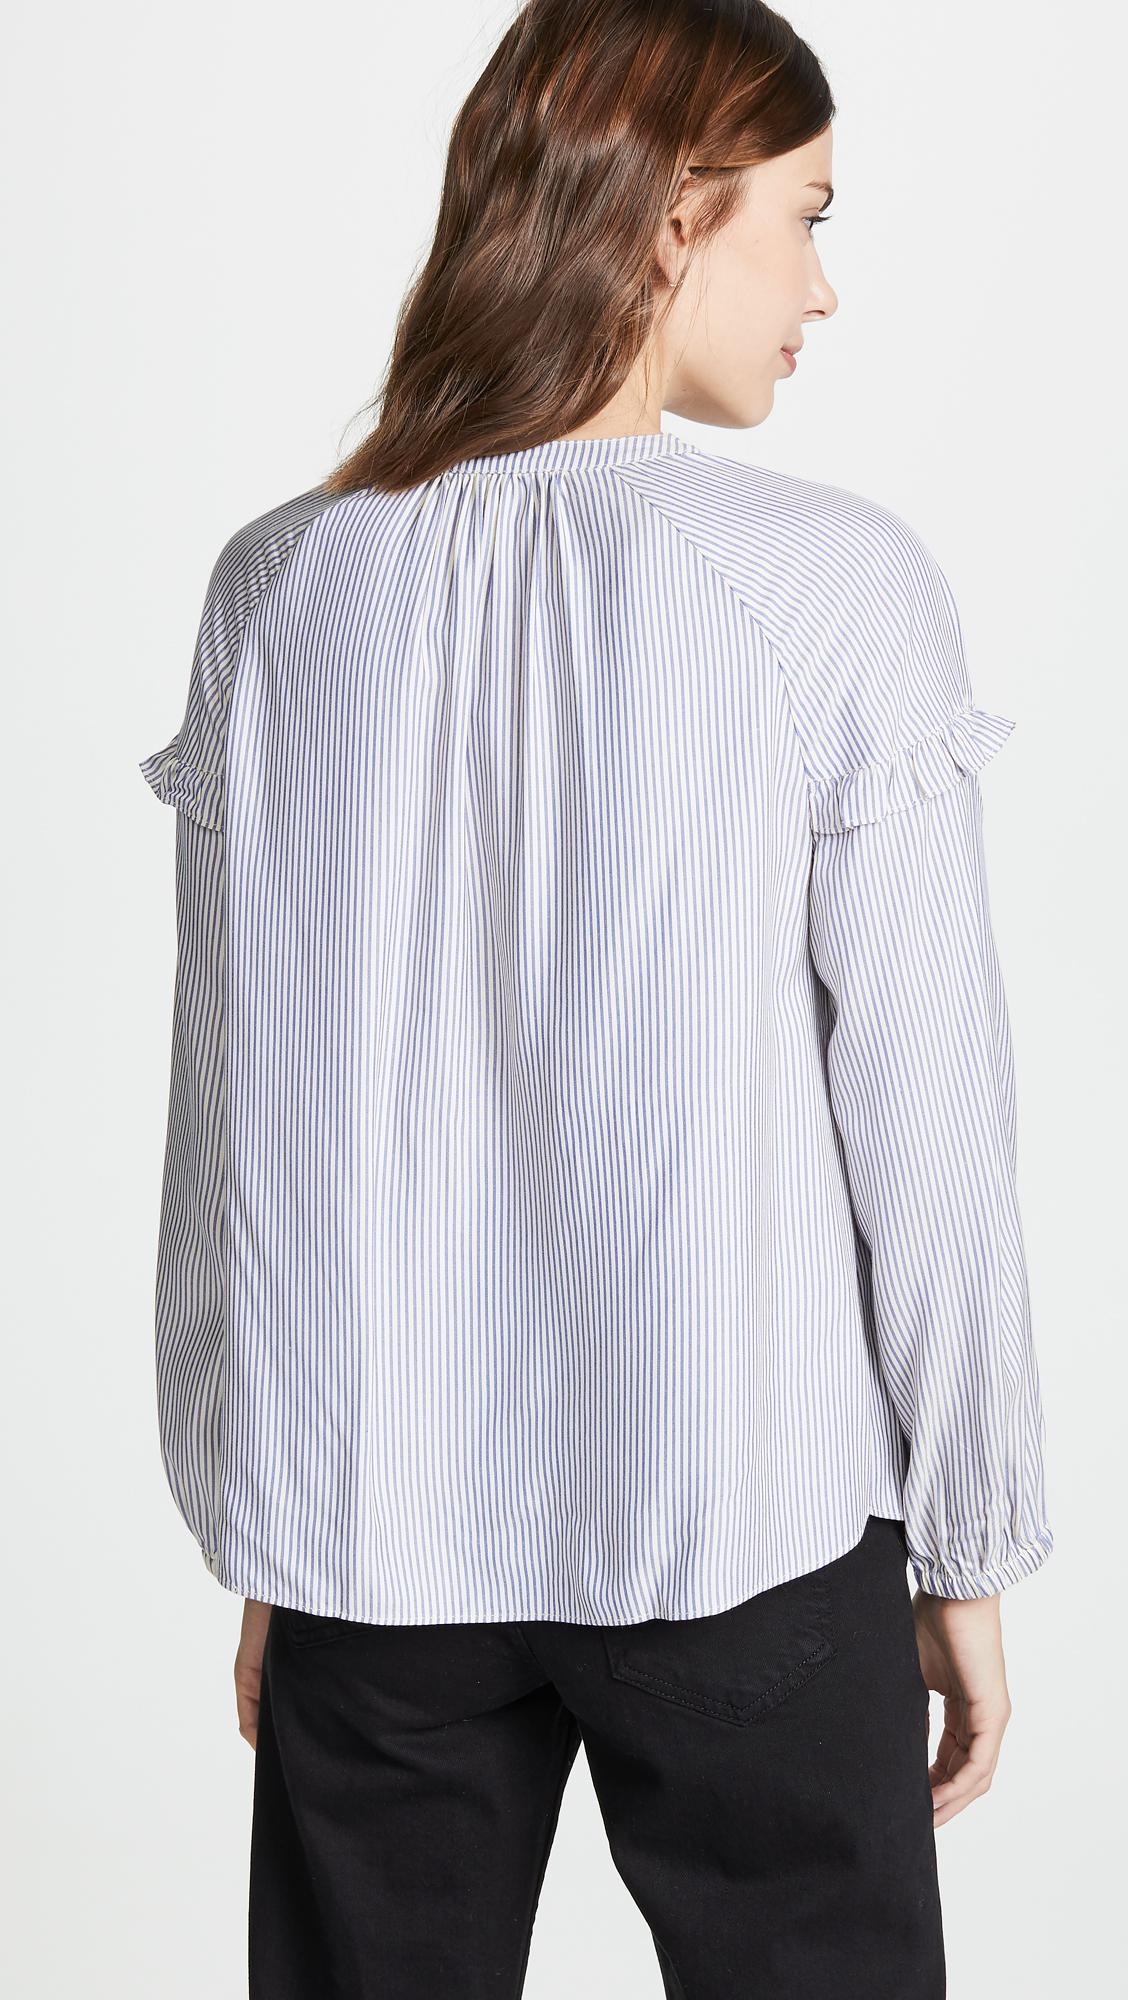 3af4d7f13c Madewell - Multicolor Collarless Ruffle Sleeve Button Down - Lyst. View  fullscreen